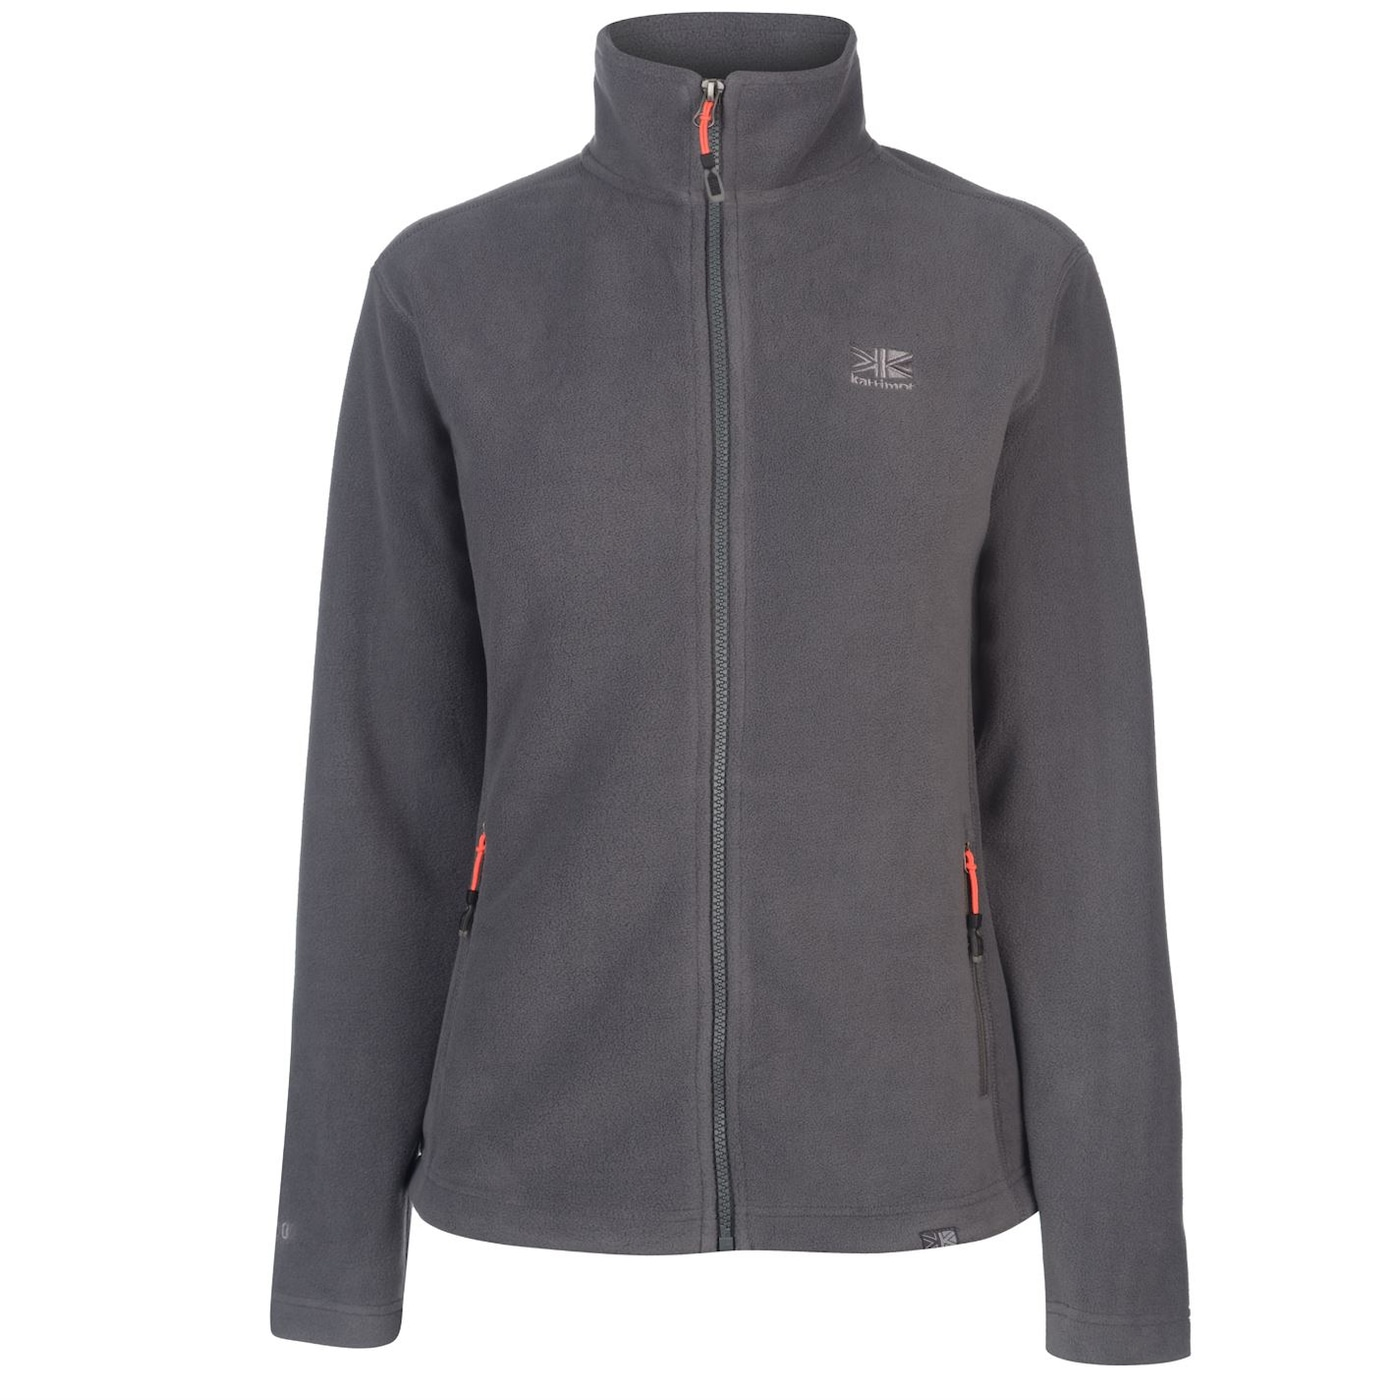 Karrimor x lite jacket ladies